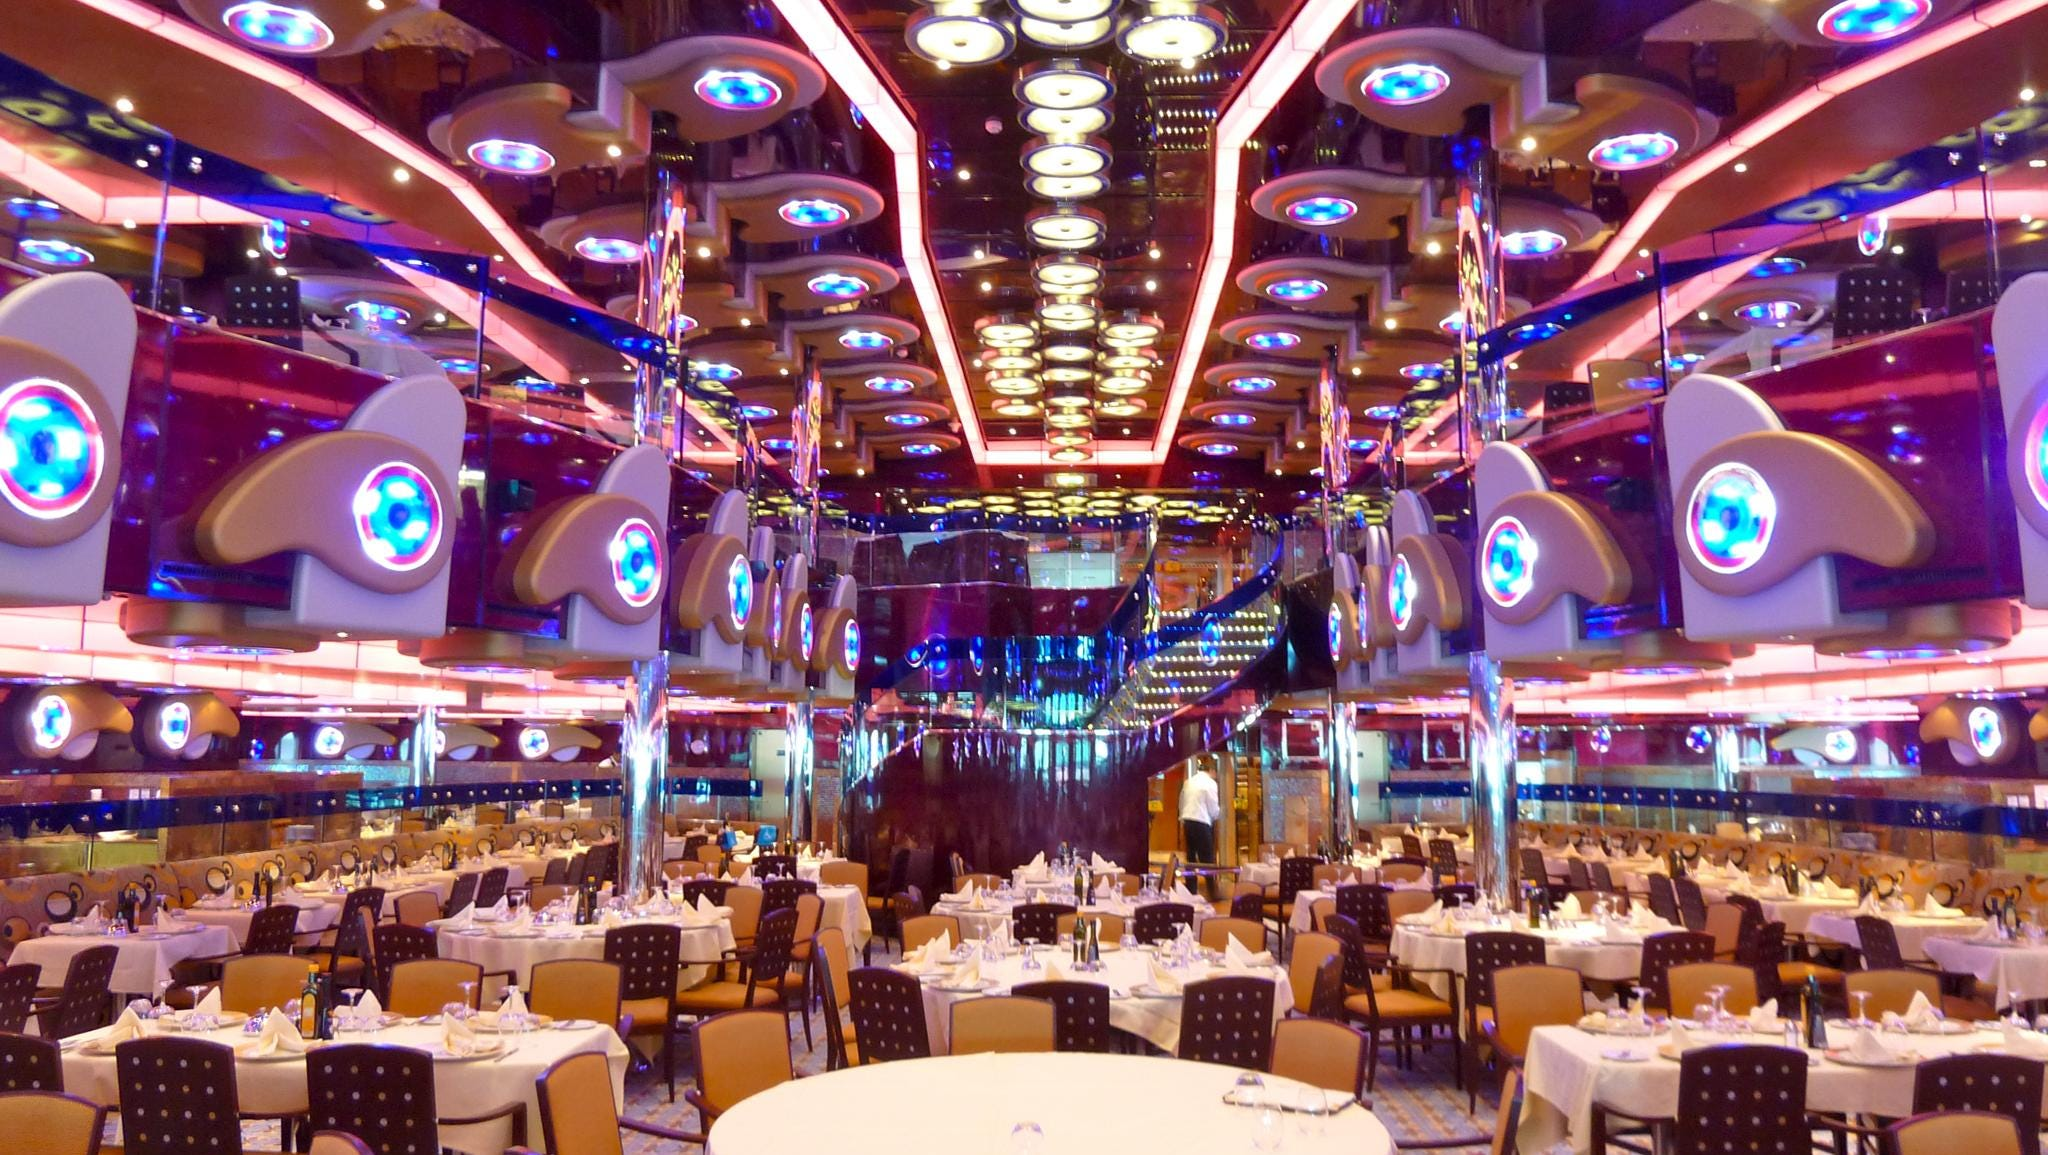 Here is a view facing forward in the Restaurant Albatros from aft Gardenia Deck.